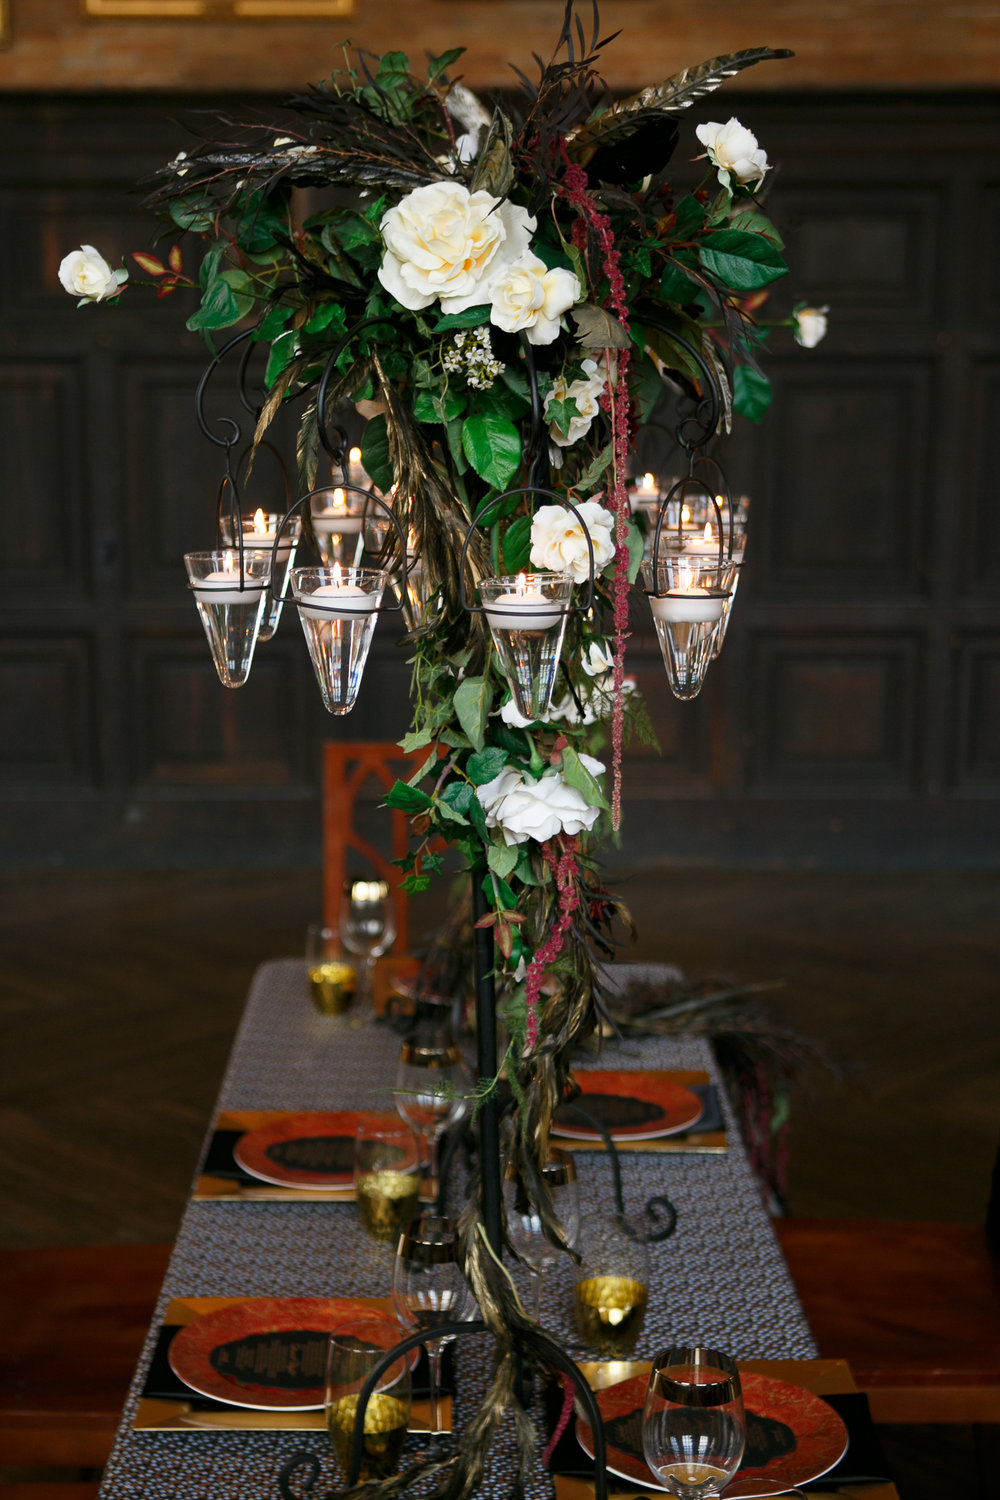 14 Tall Wedding Centerpiece Highline Hotel Wedding Aribella Events.jpg